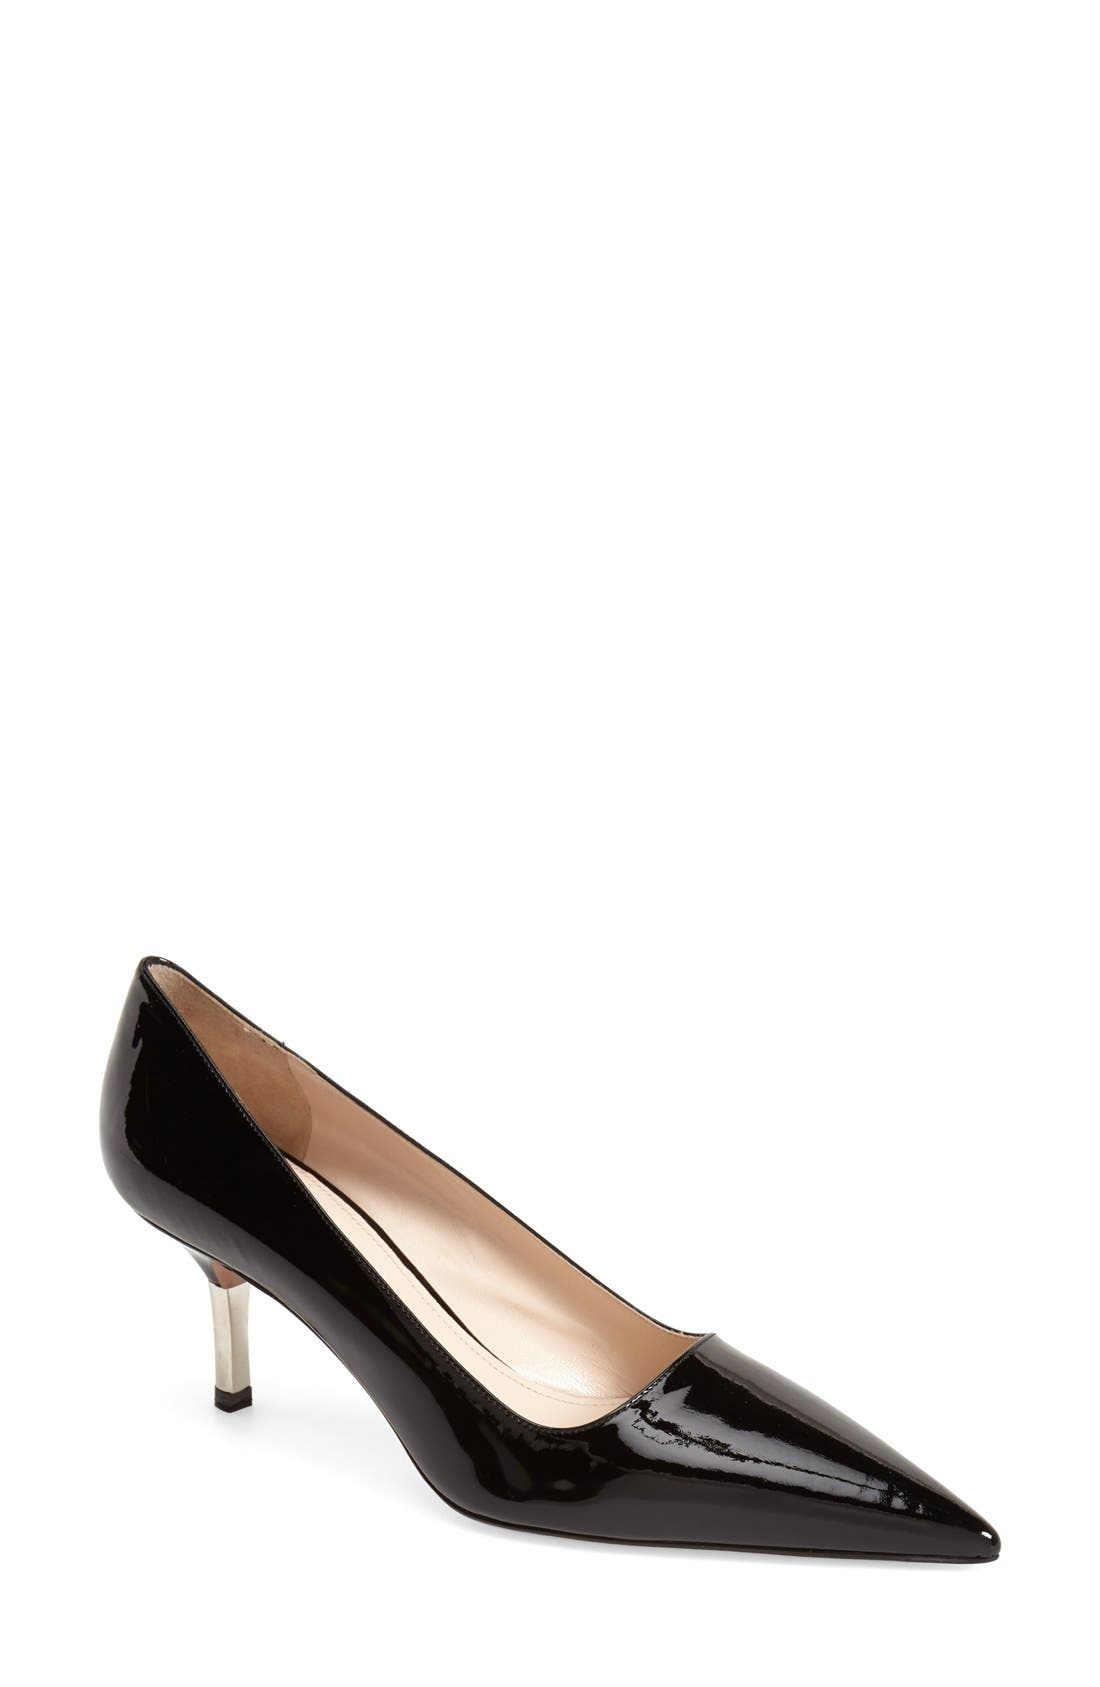 Main Image - Prada Metal Heel Pump (Women)